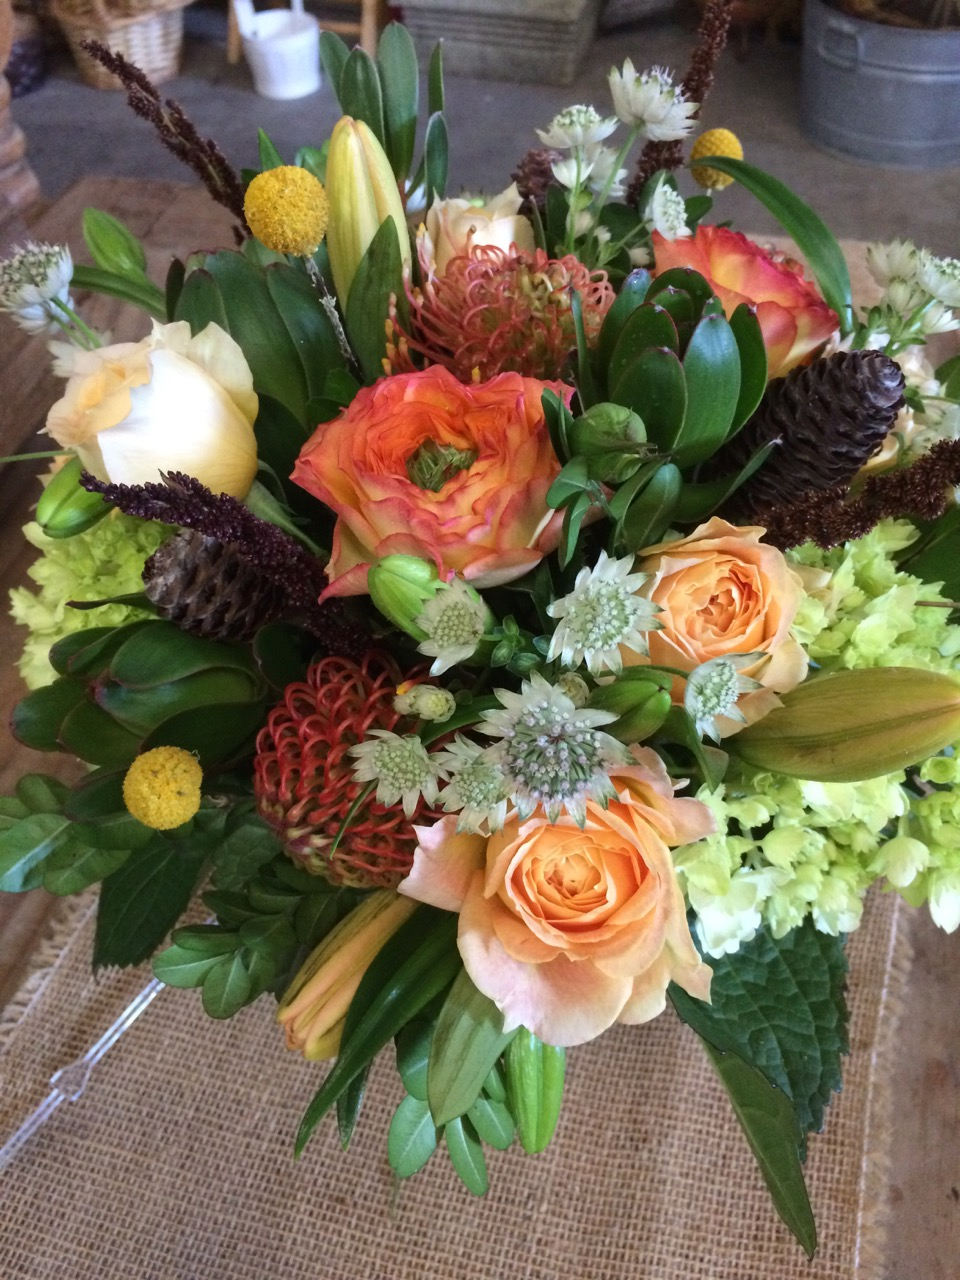 Anne_Appleman_Flowers_Delivery - 9